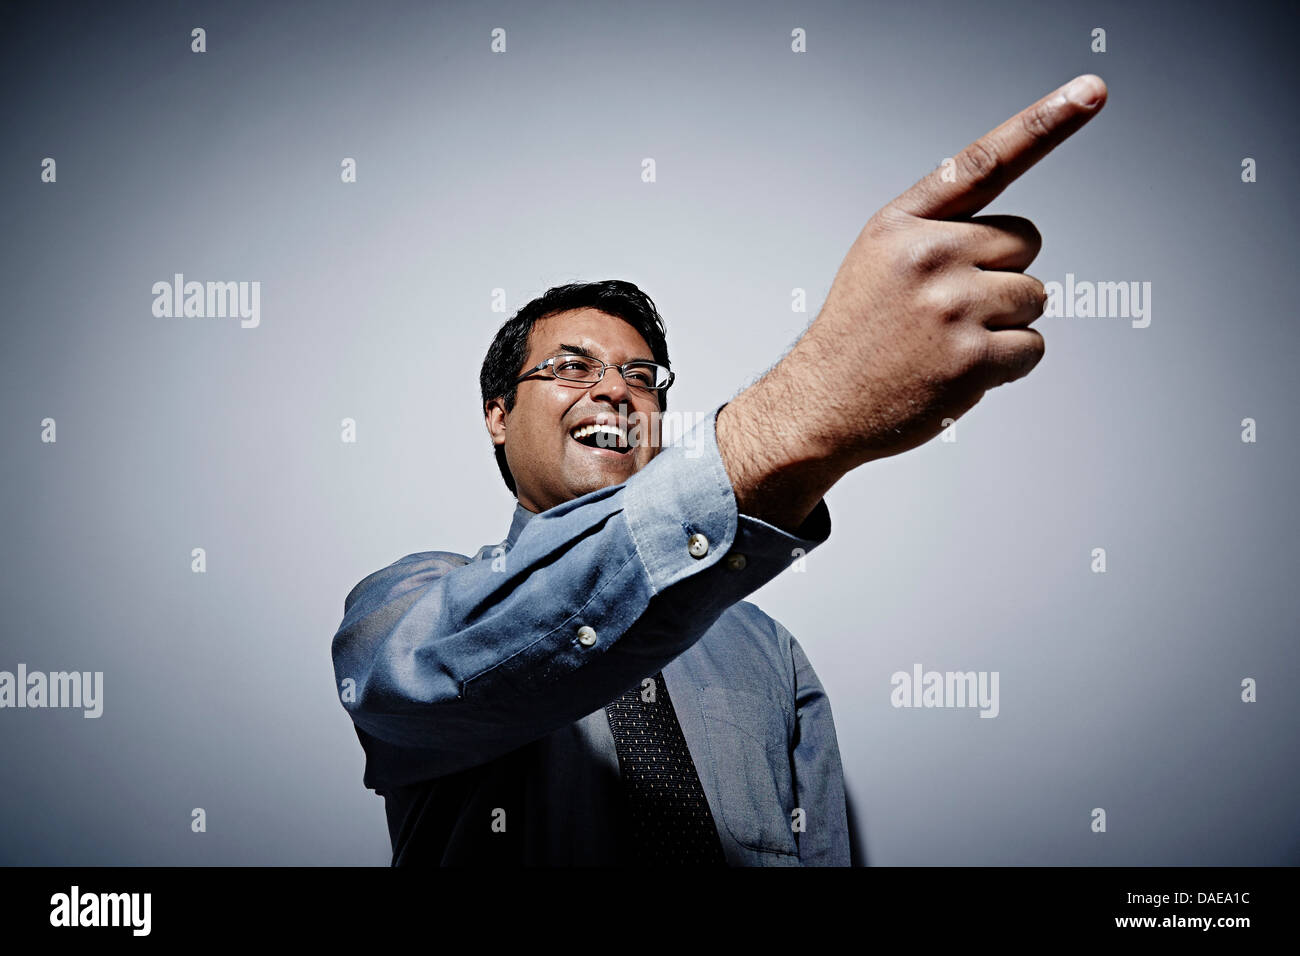 Studio portrait of businessman with exaggerated pointing finger - Stock Image